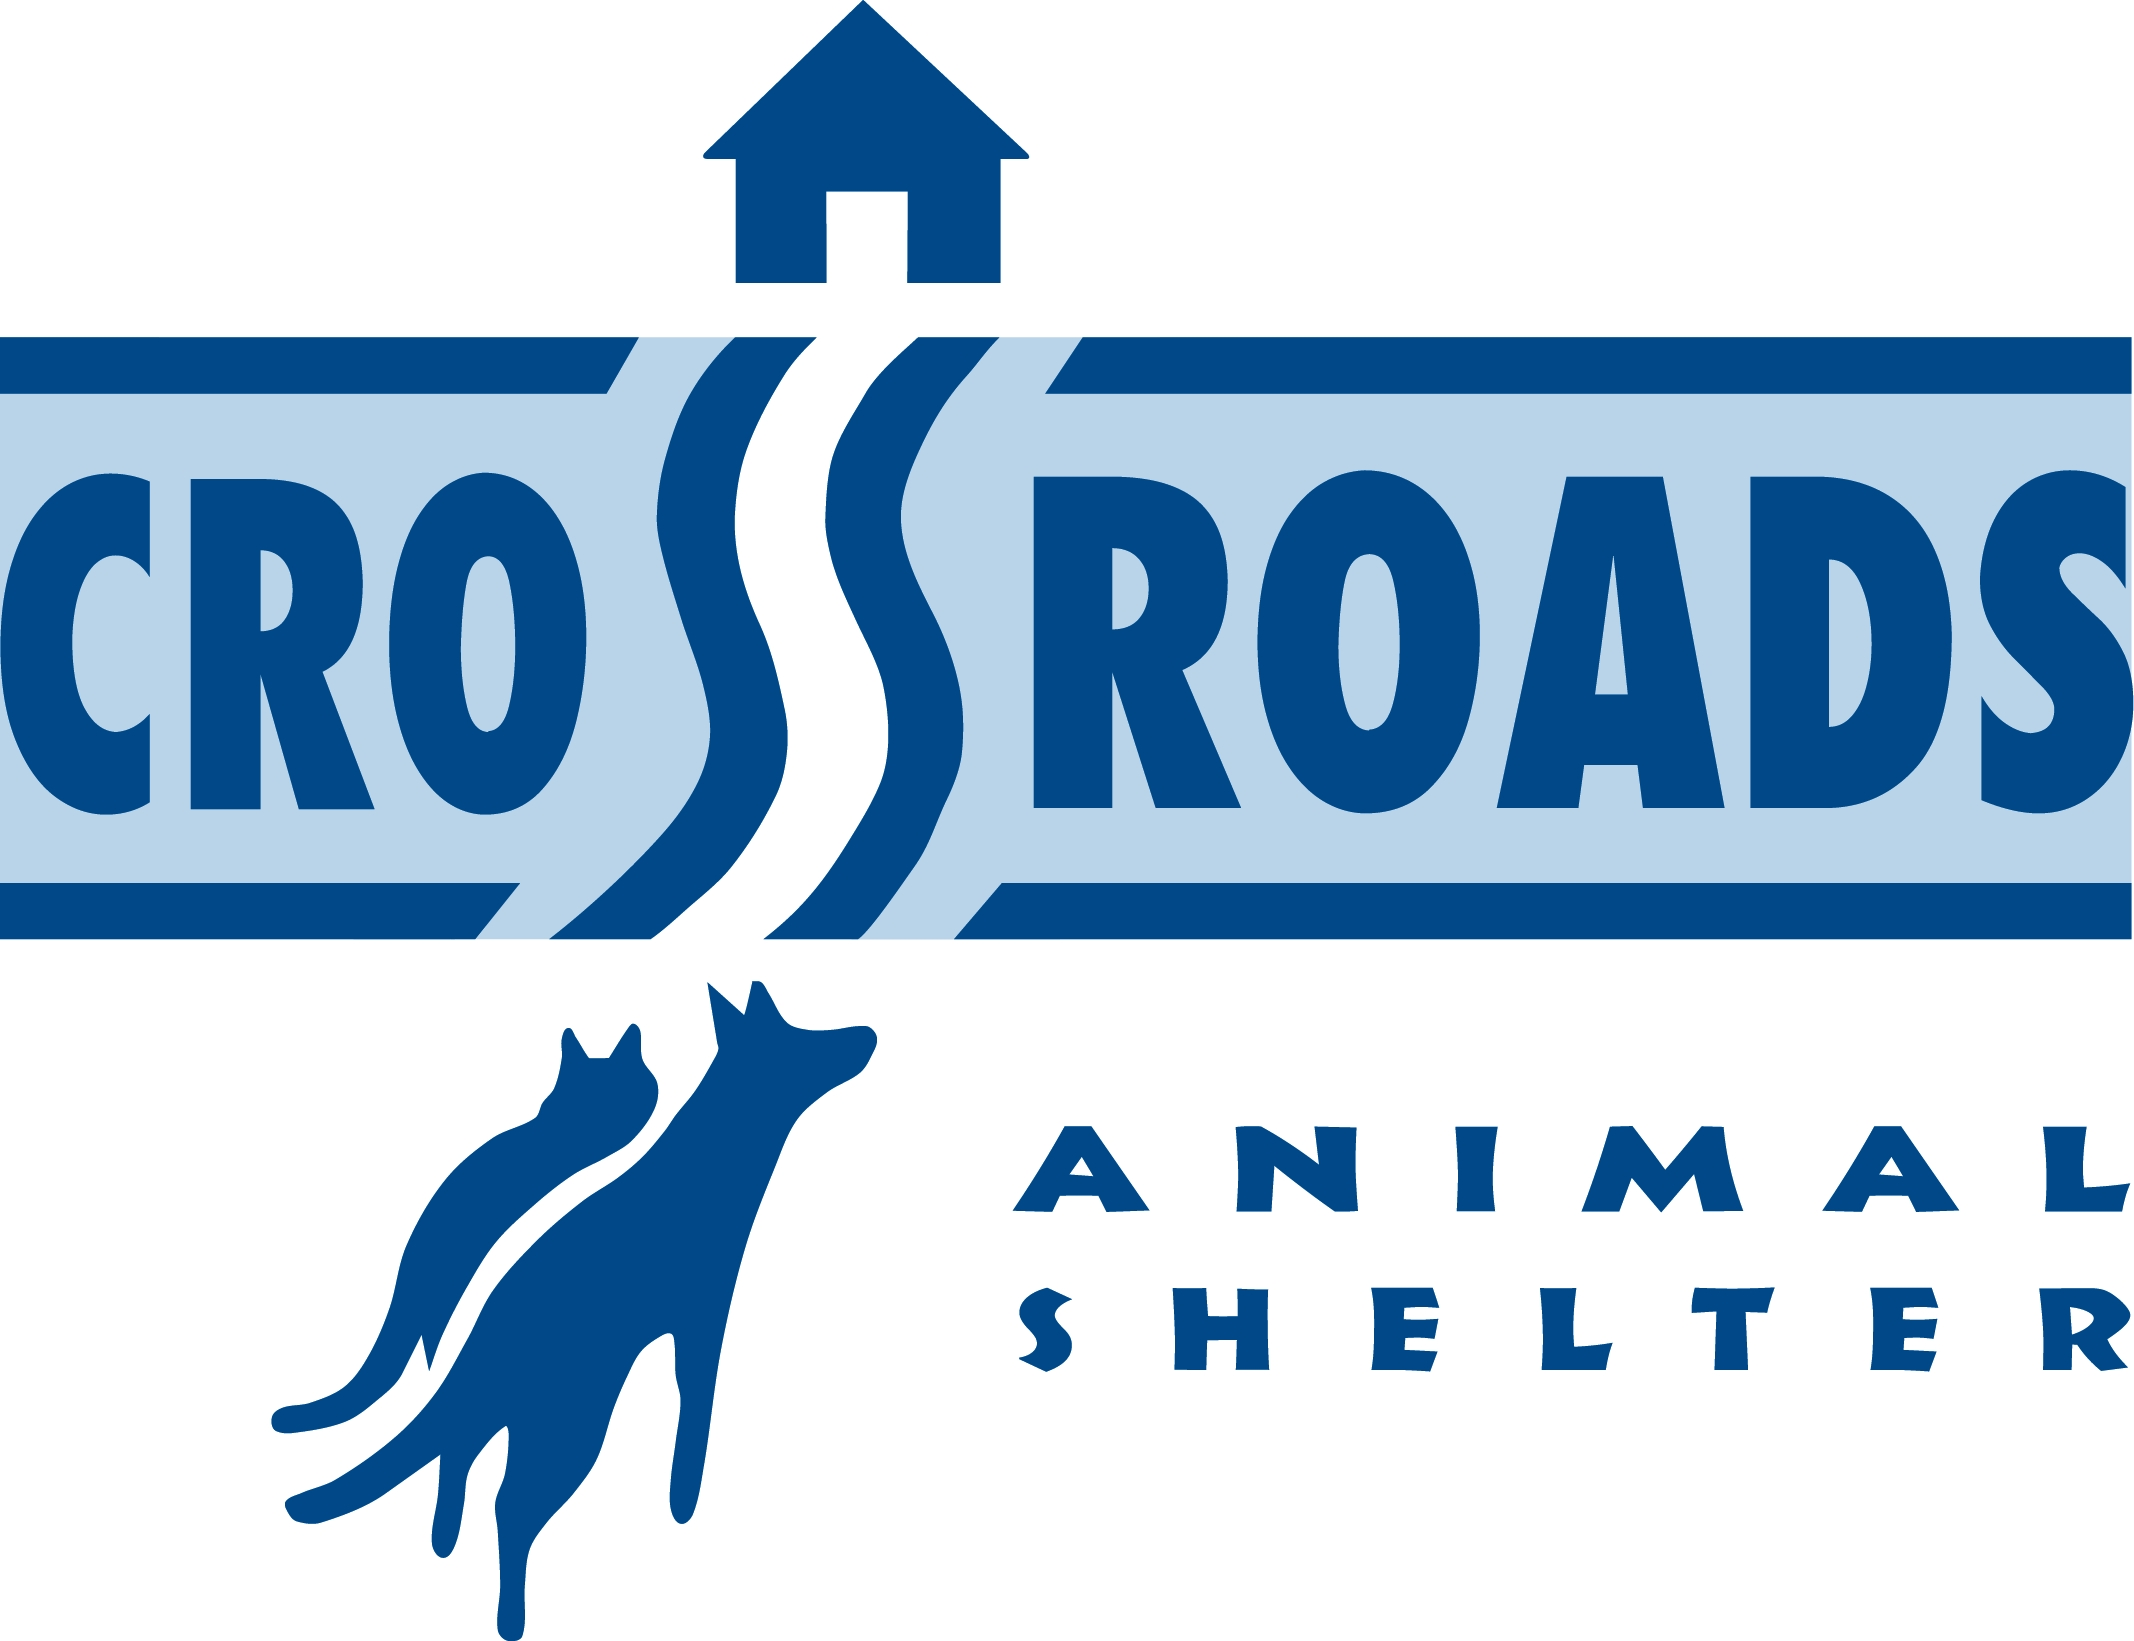 Crossroads Animal Shelter